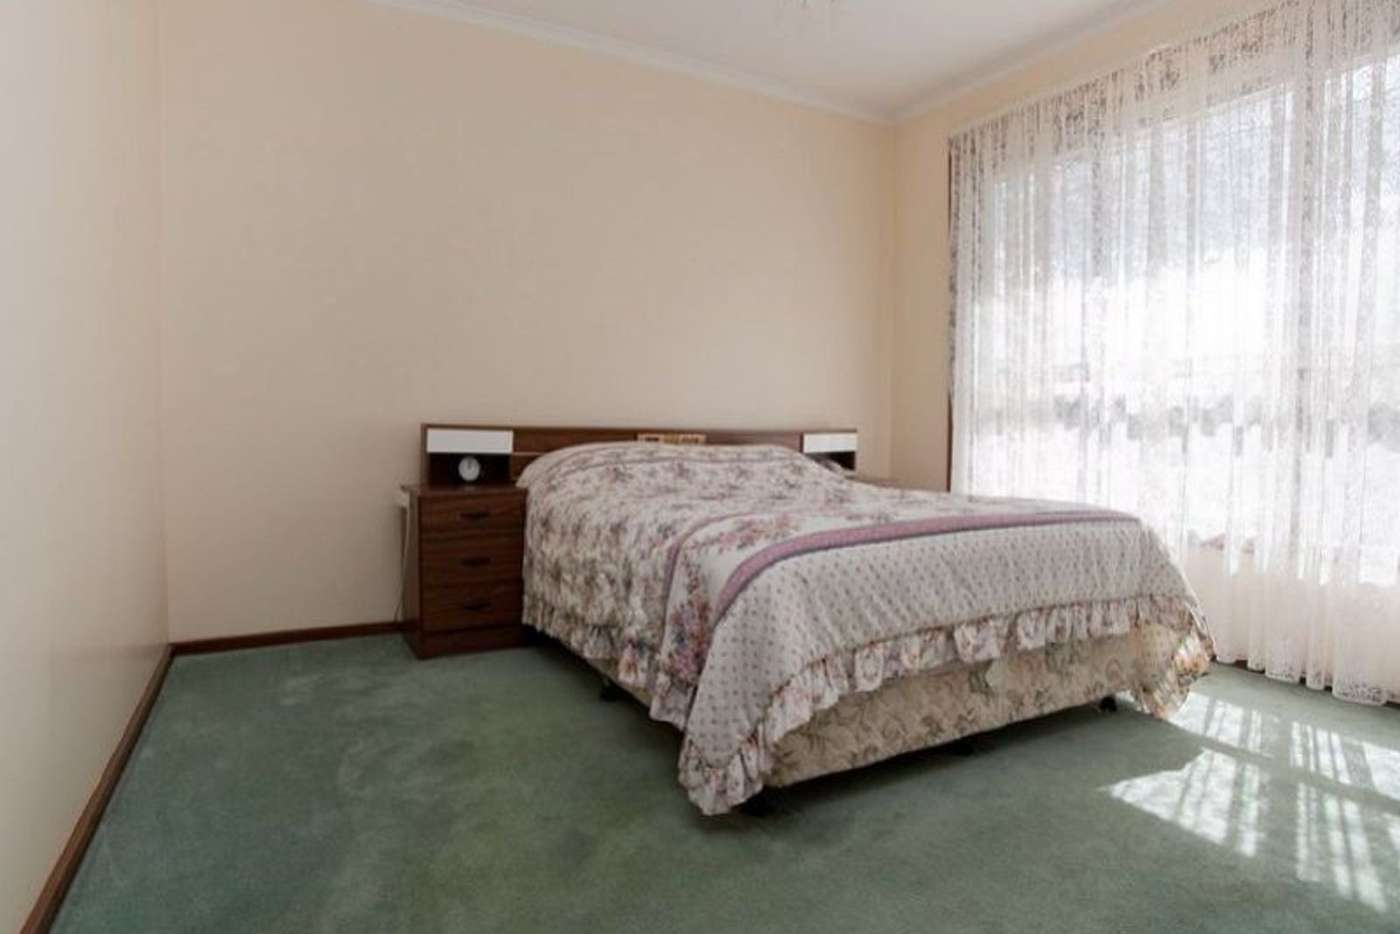 Sixth view of Homely house listing, 69 Barry Road, Thomastown VIC 3074